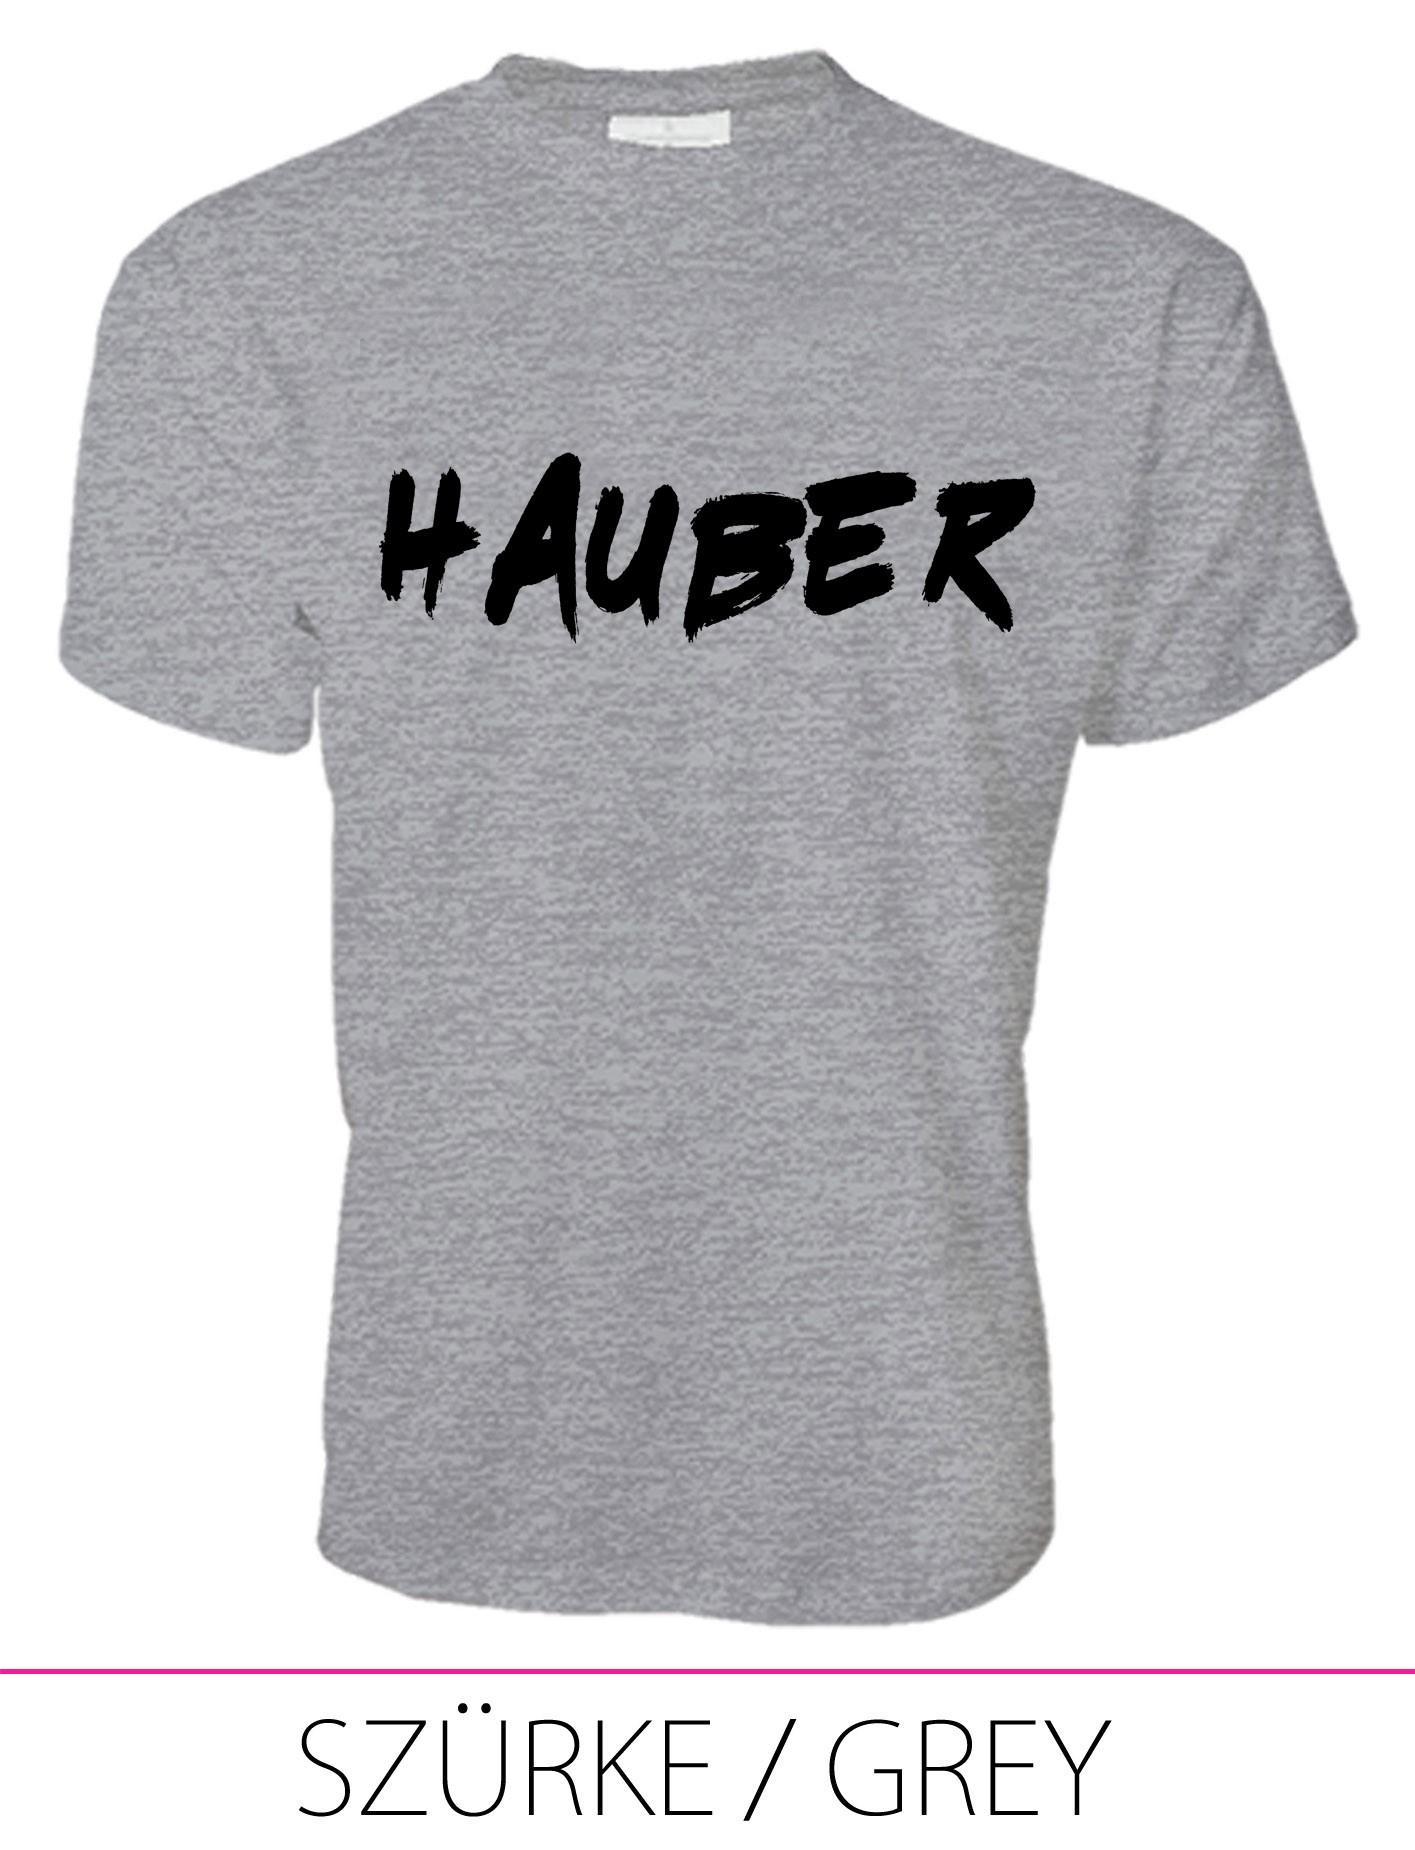 MEN PREMIUM CREW NECK T-SHIRT HAUBER GREY